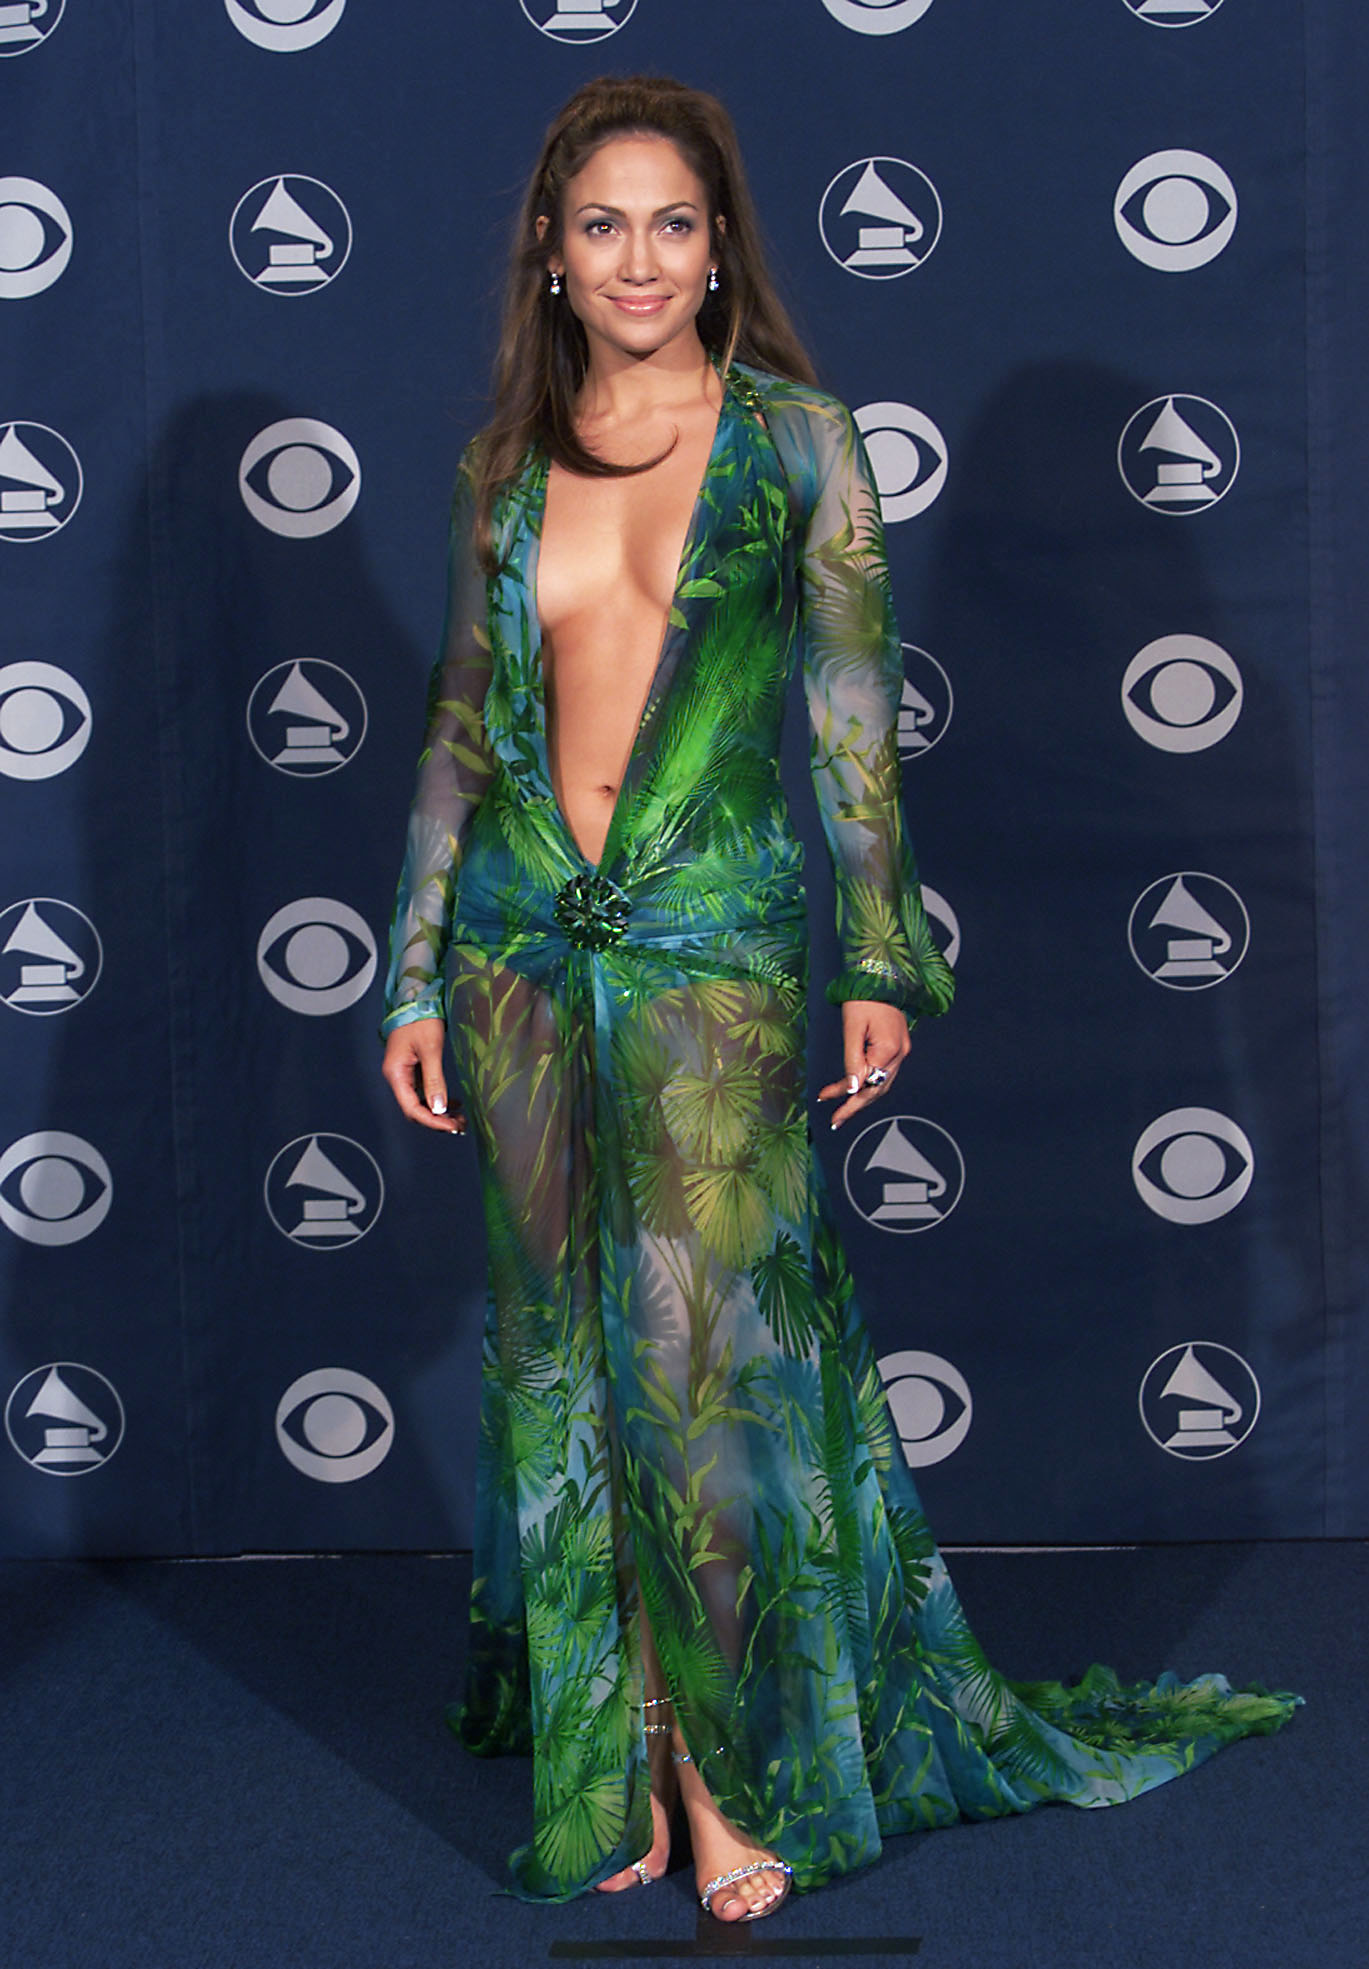 Дженнифер Лопез в платье Versace at the 42nd Grammy Awards held in Los Angeles, CA on February 23, 2000